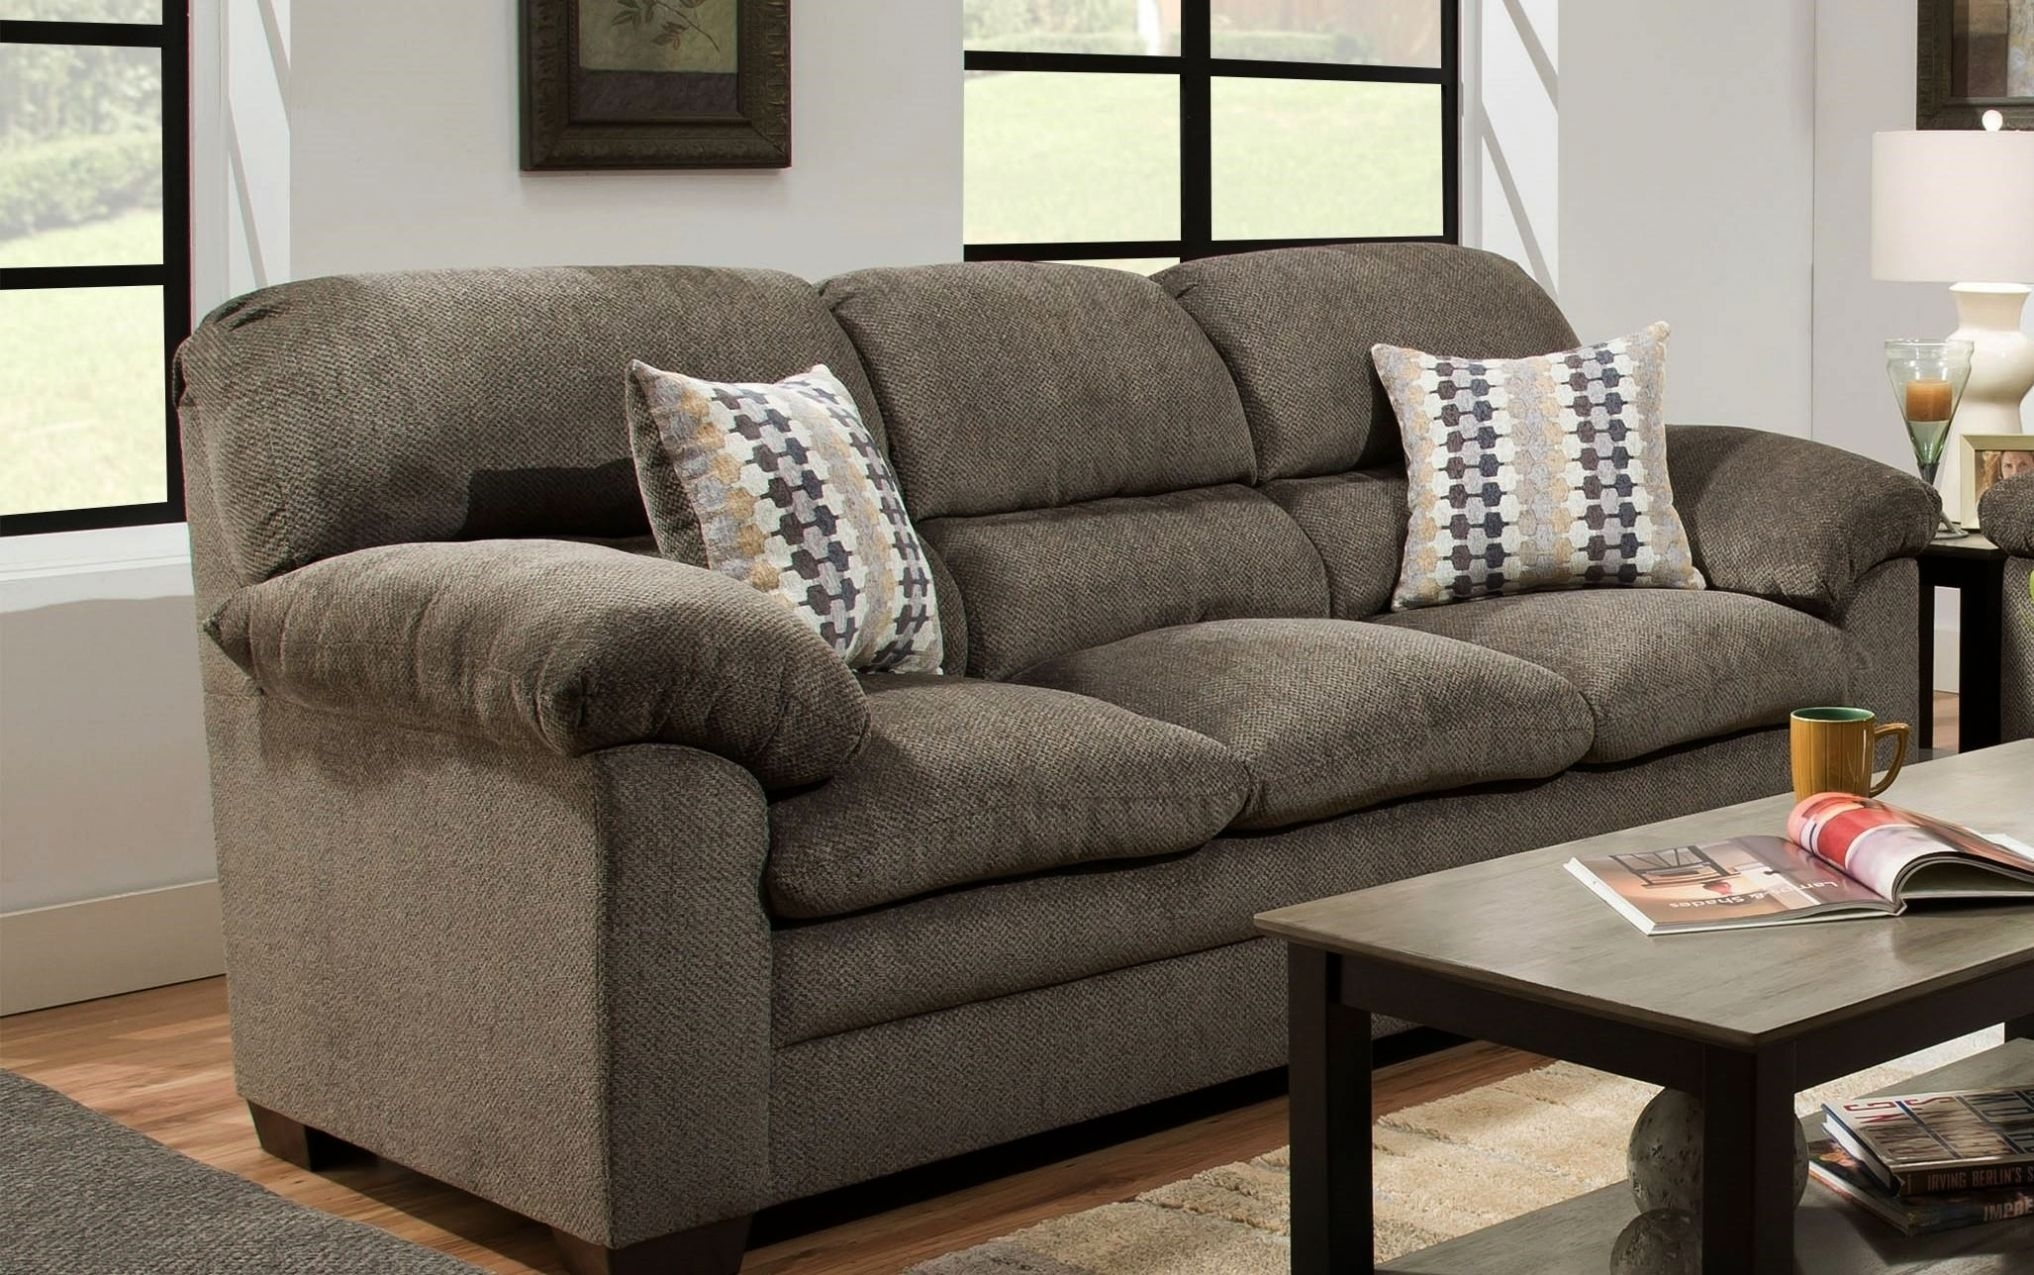 Furniture Fair Wilmington Nc | Ovnblog In Wilmington Nc Sectional Sofas (View 6 of 10)